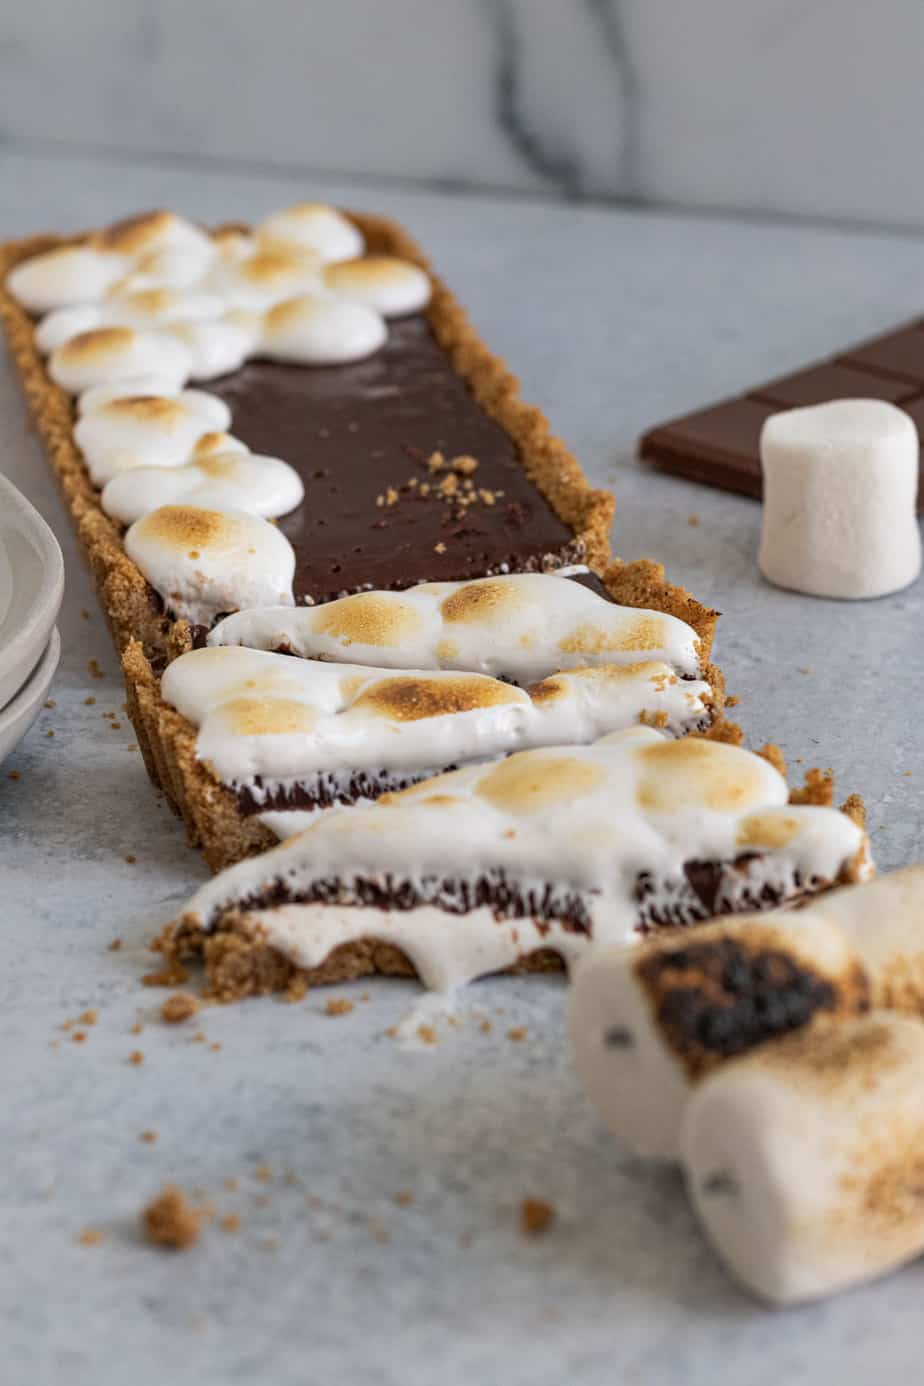 triangle shaped slices of s'mores tart with toasted marshmallow on top